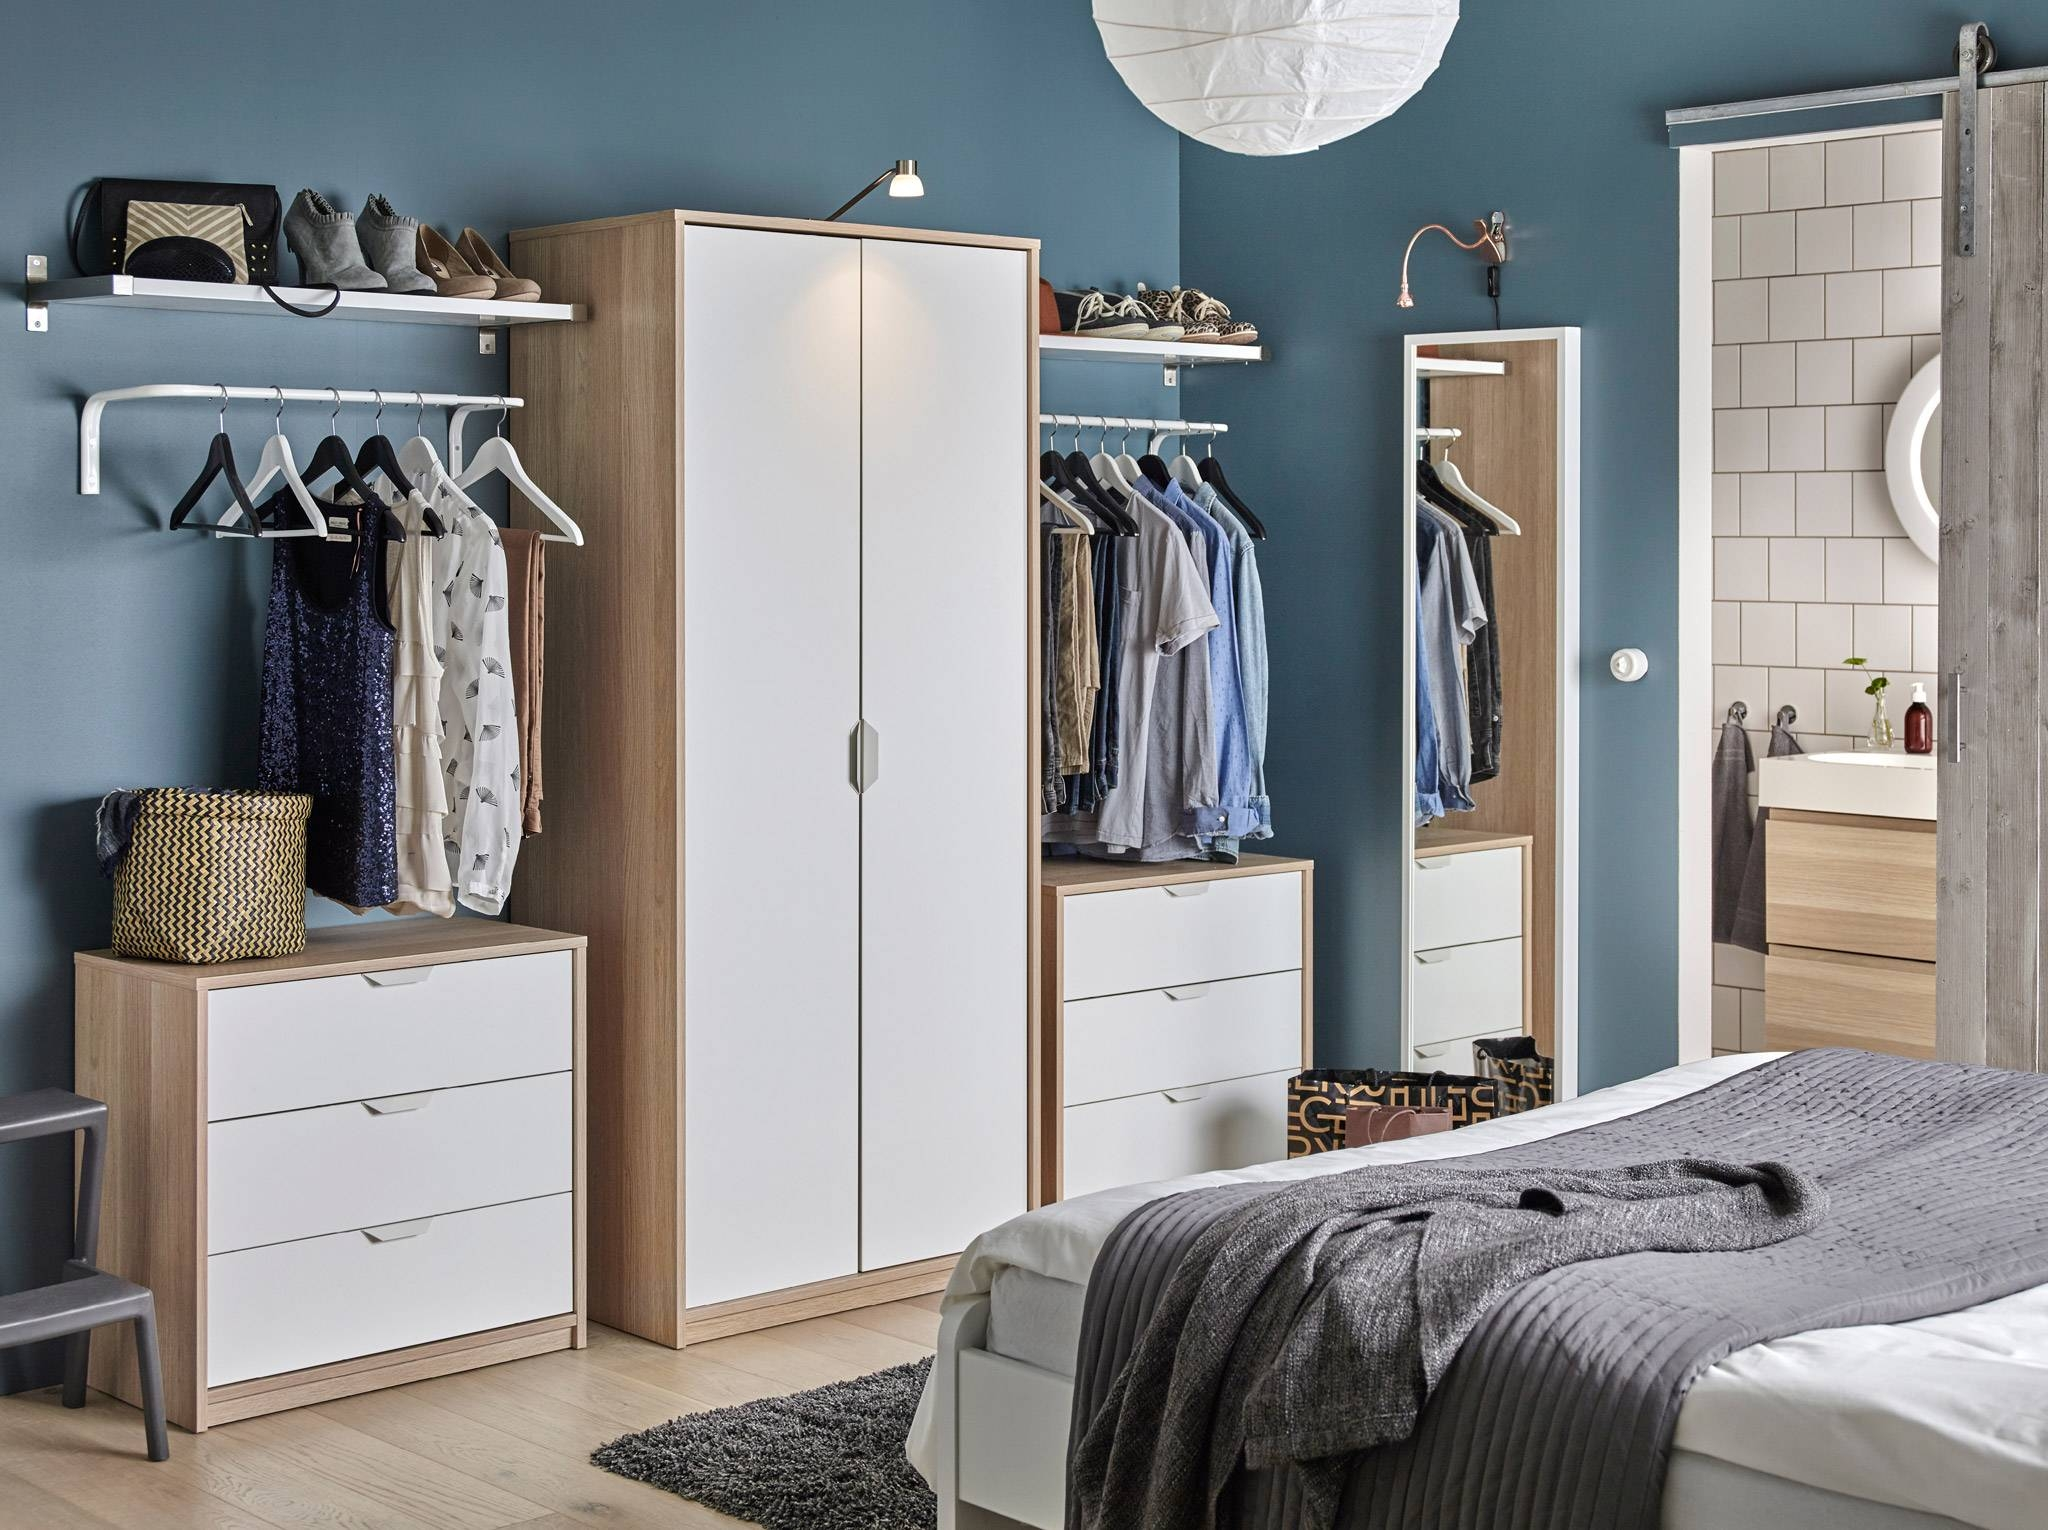 Bedroom Furniture & Ideas | Ikea with regard to Chest Of Drawers Wardrobes Combination (Image 5 of 15)